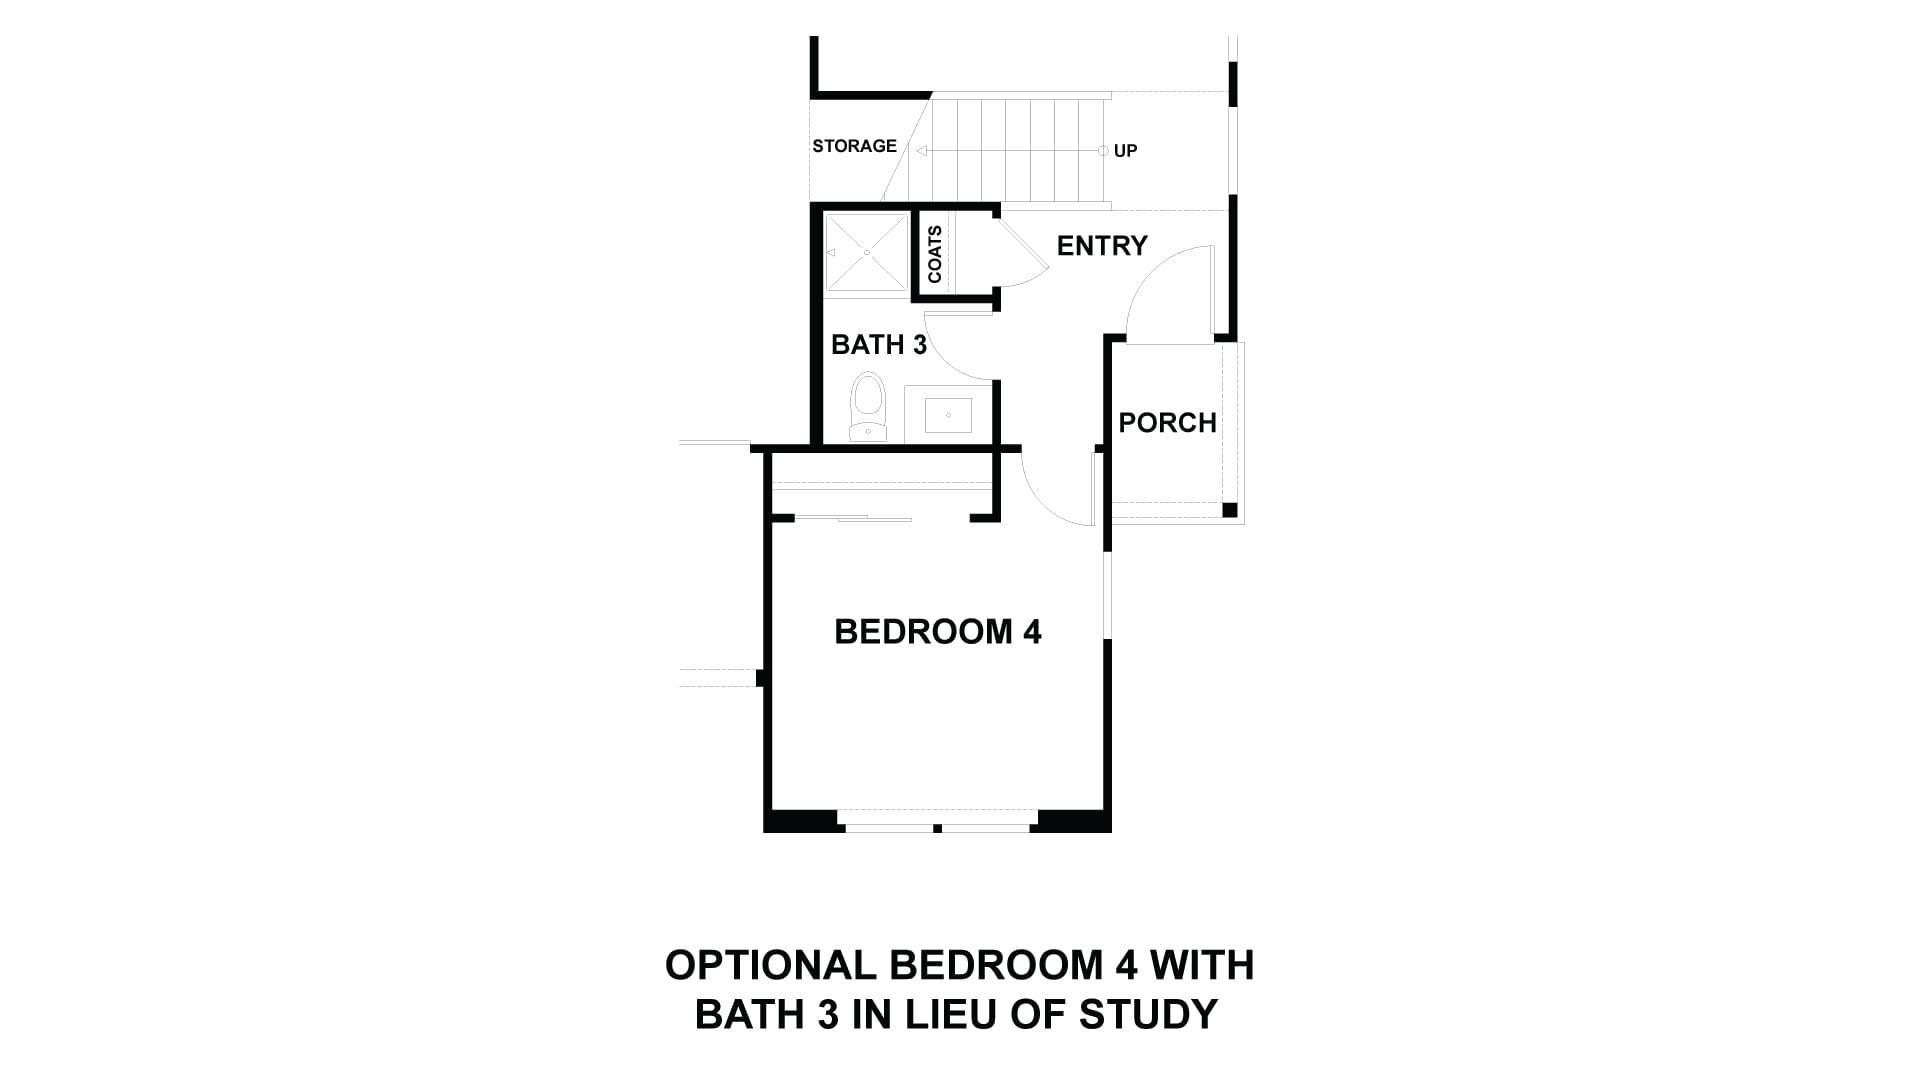 Optional Bedroom 4 and Bath 3 in lieu of Study. 3br New Home in Costa Mesa, CA